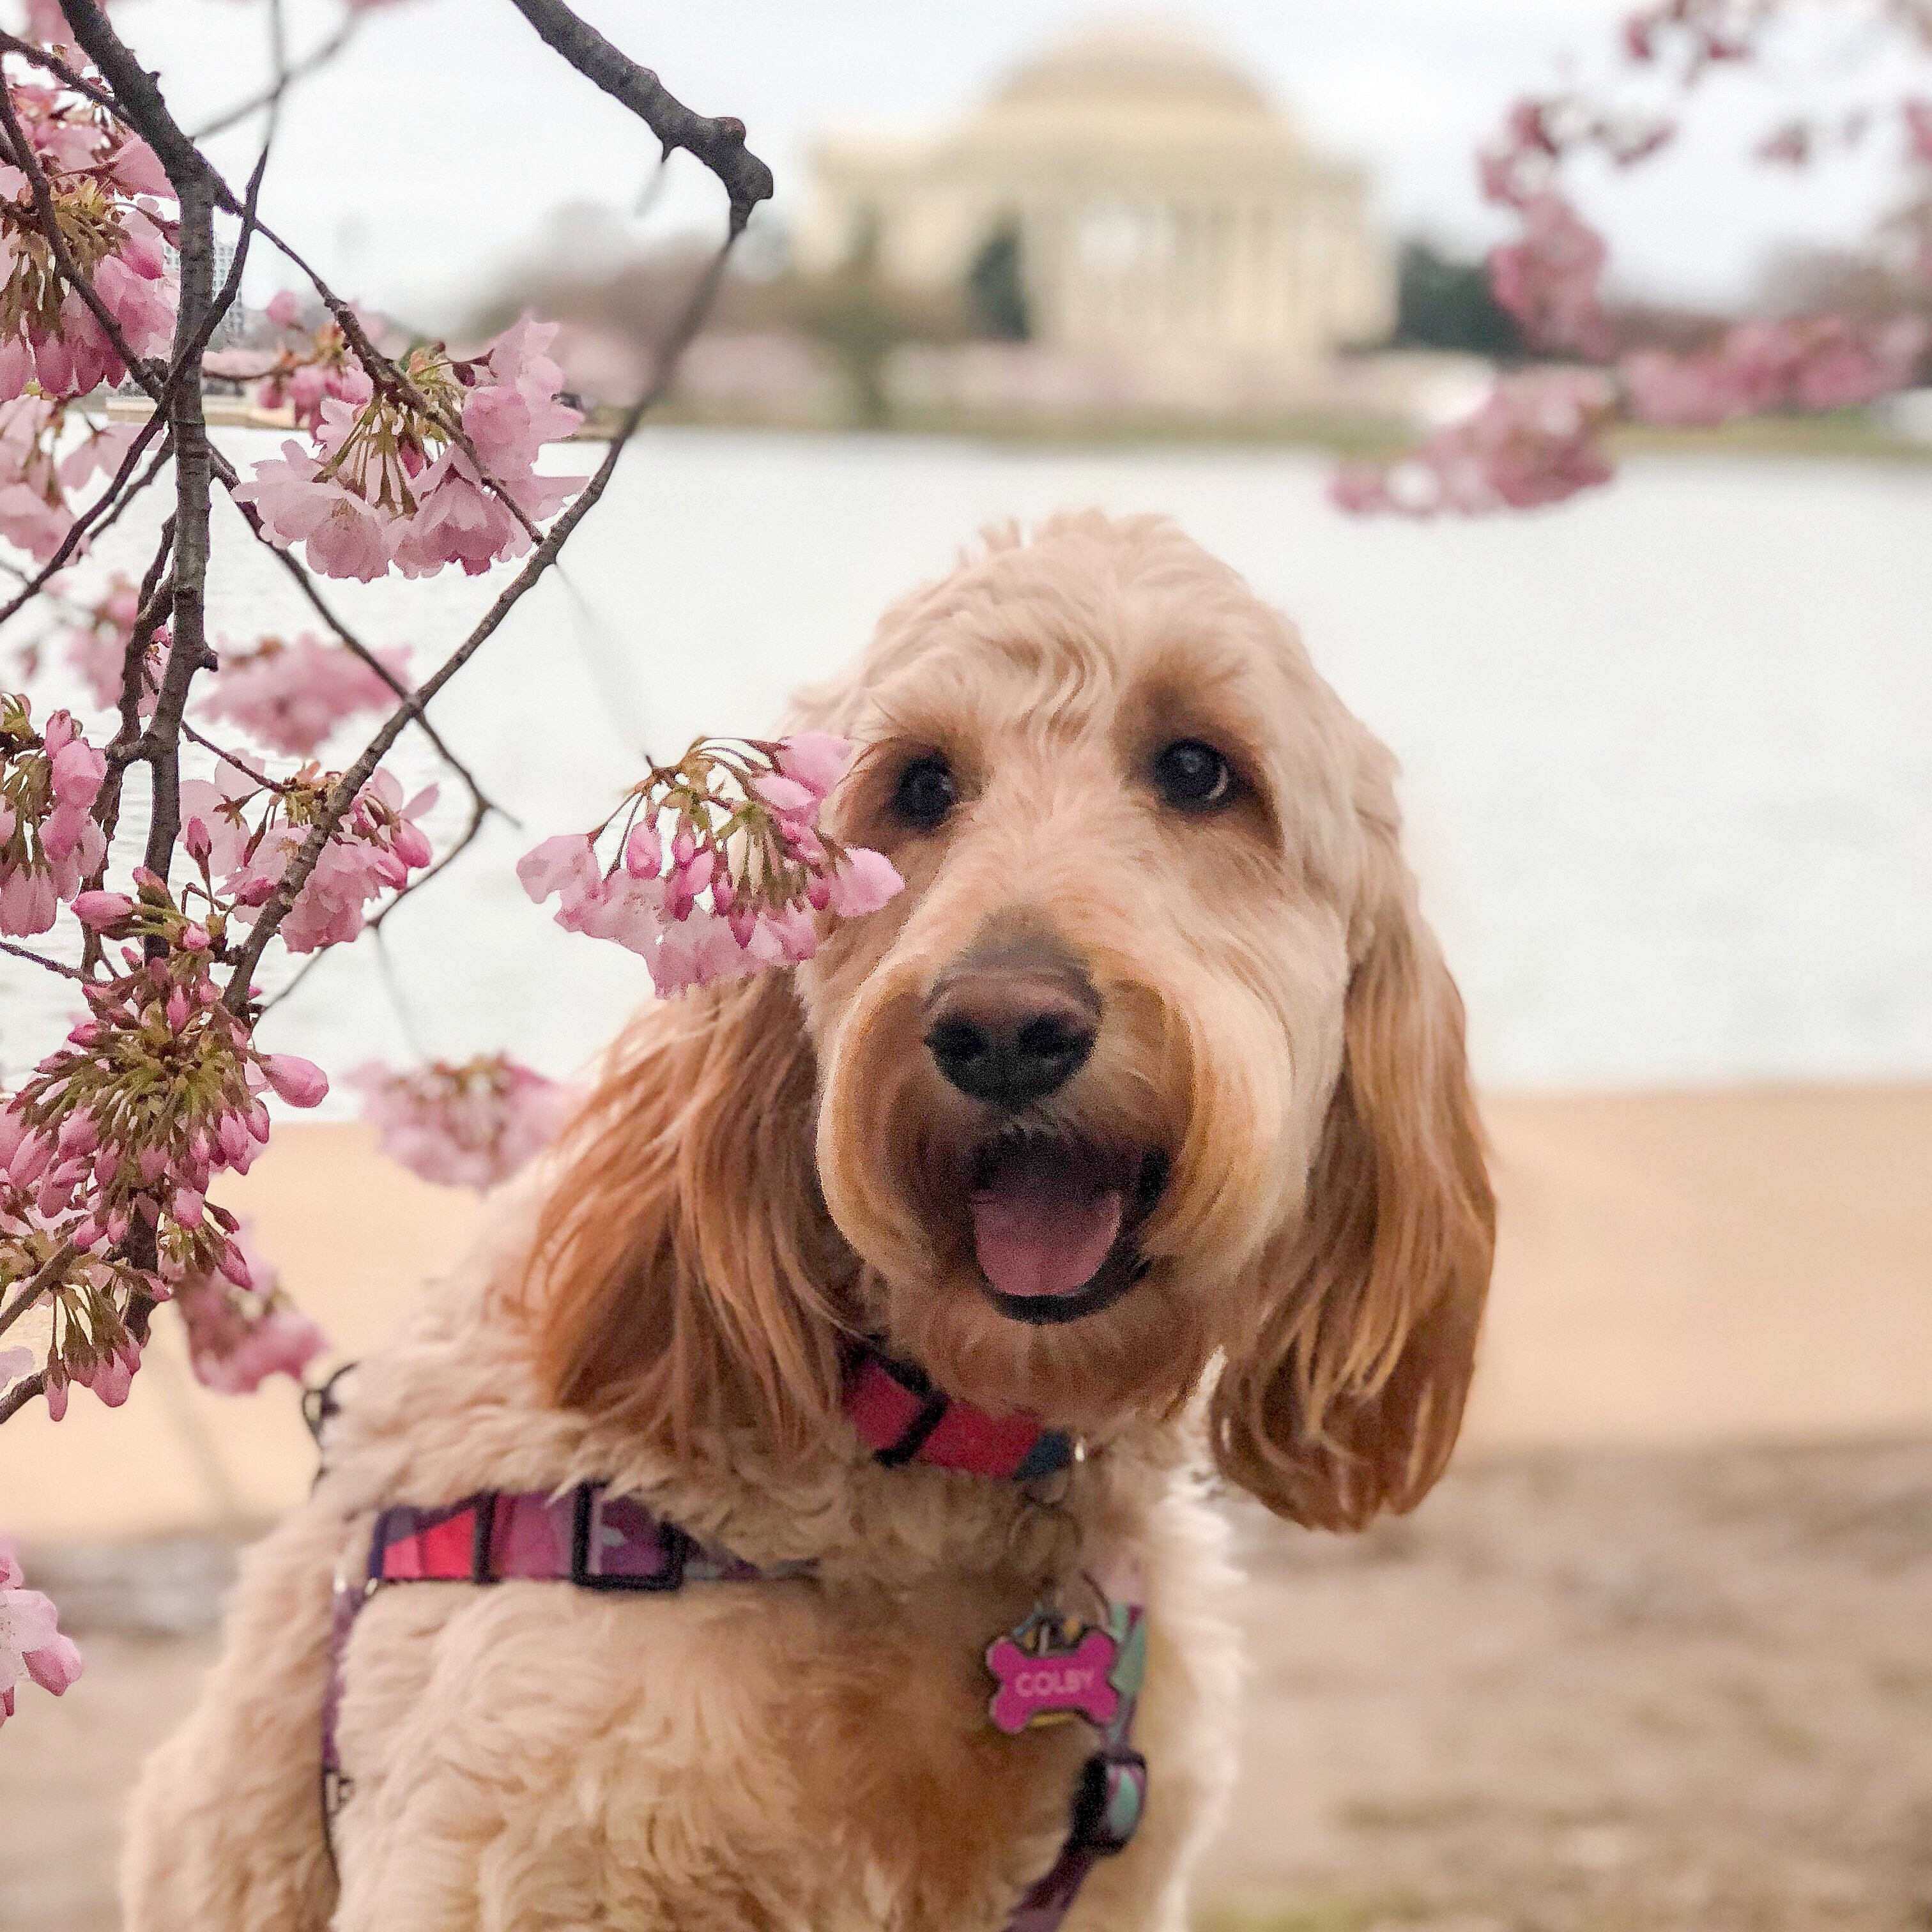 In honor of National Pet Day (which is basically like Christmas around here!) we checked in on a few of our favorite Instagram stars to see what they've been up to lately, and we noticed many of them had paid a visit to D.C.'s beloved blossoms. So for this week's special RUFFined Spotlight, we give you some adorable four-legged admirers of the cherry blossoms! (Image: via{ } IG user @colbycheesedoodle/{ }instagram.com/colbycheesedoodle/){ }